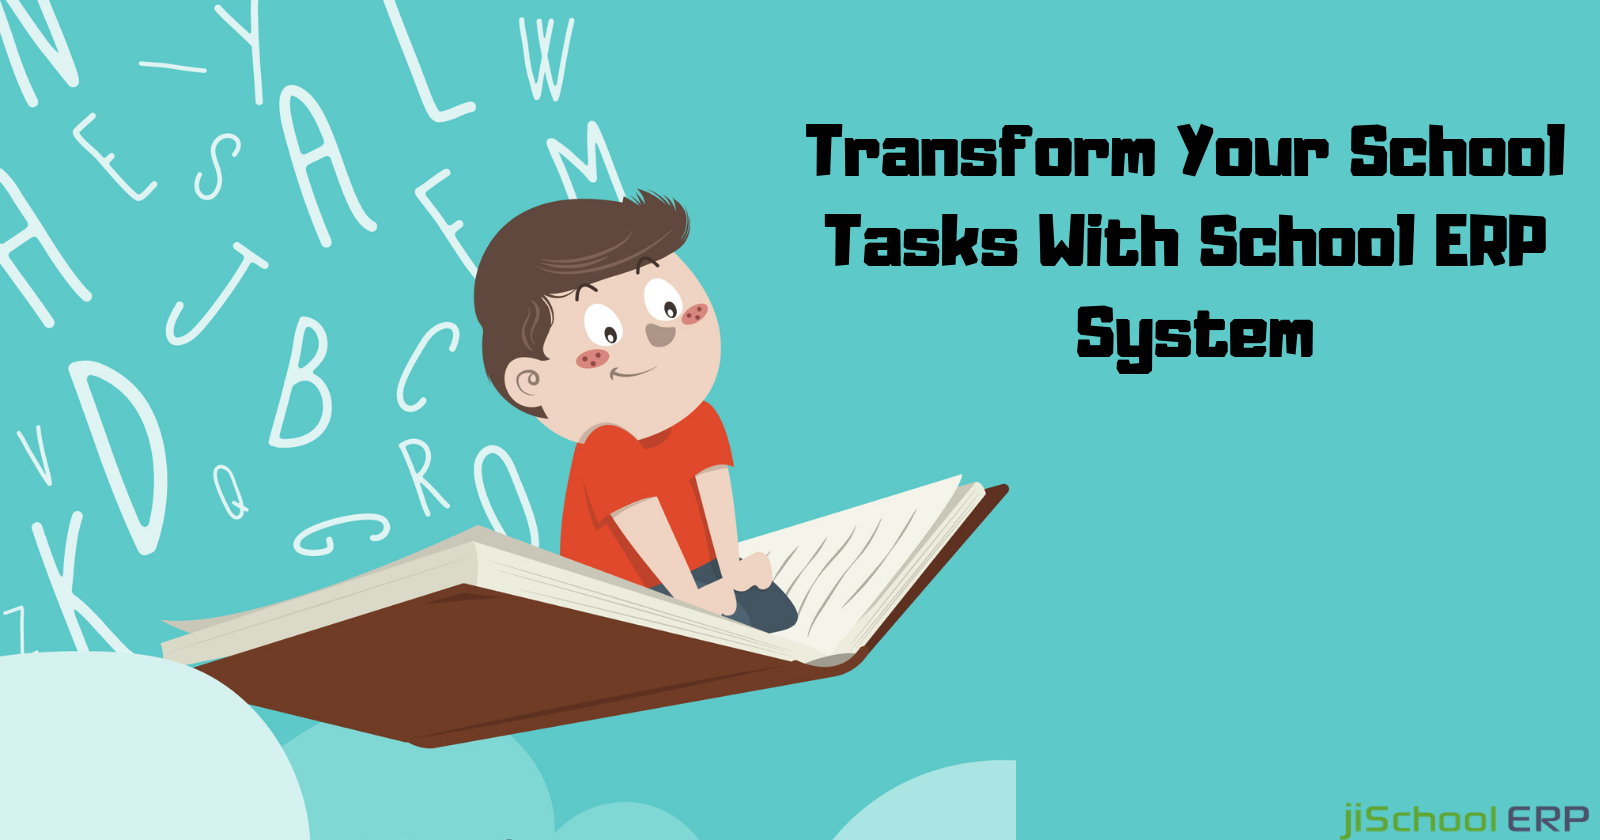 Enlighten Your Education System With School ERP System